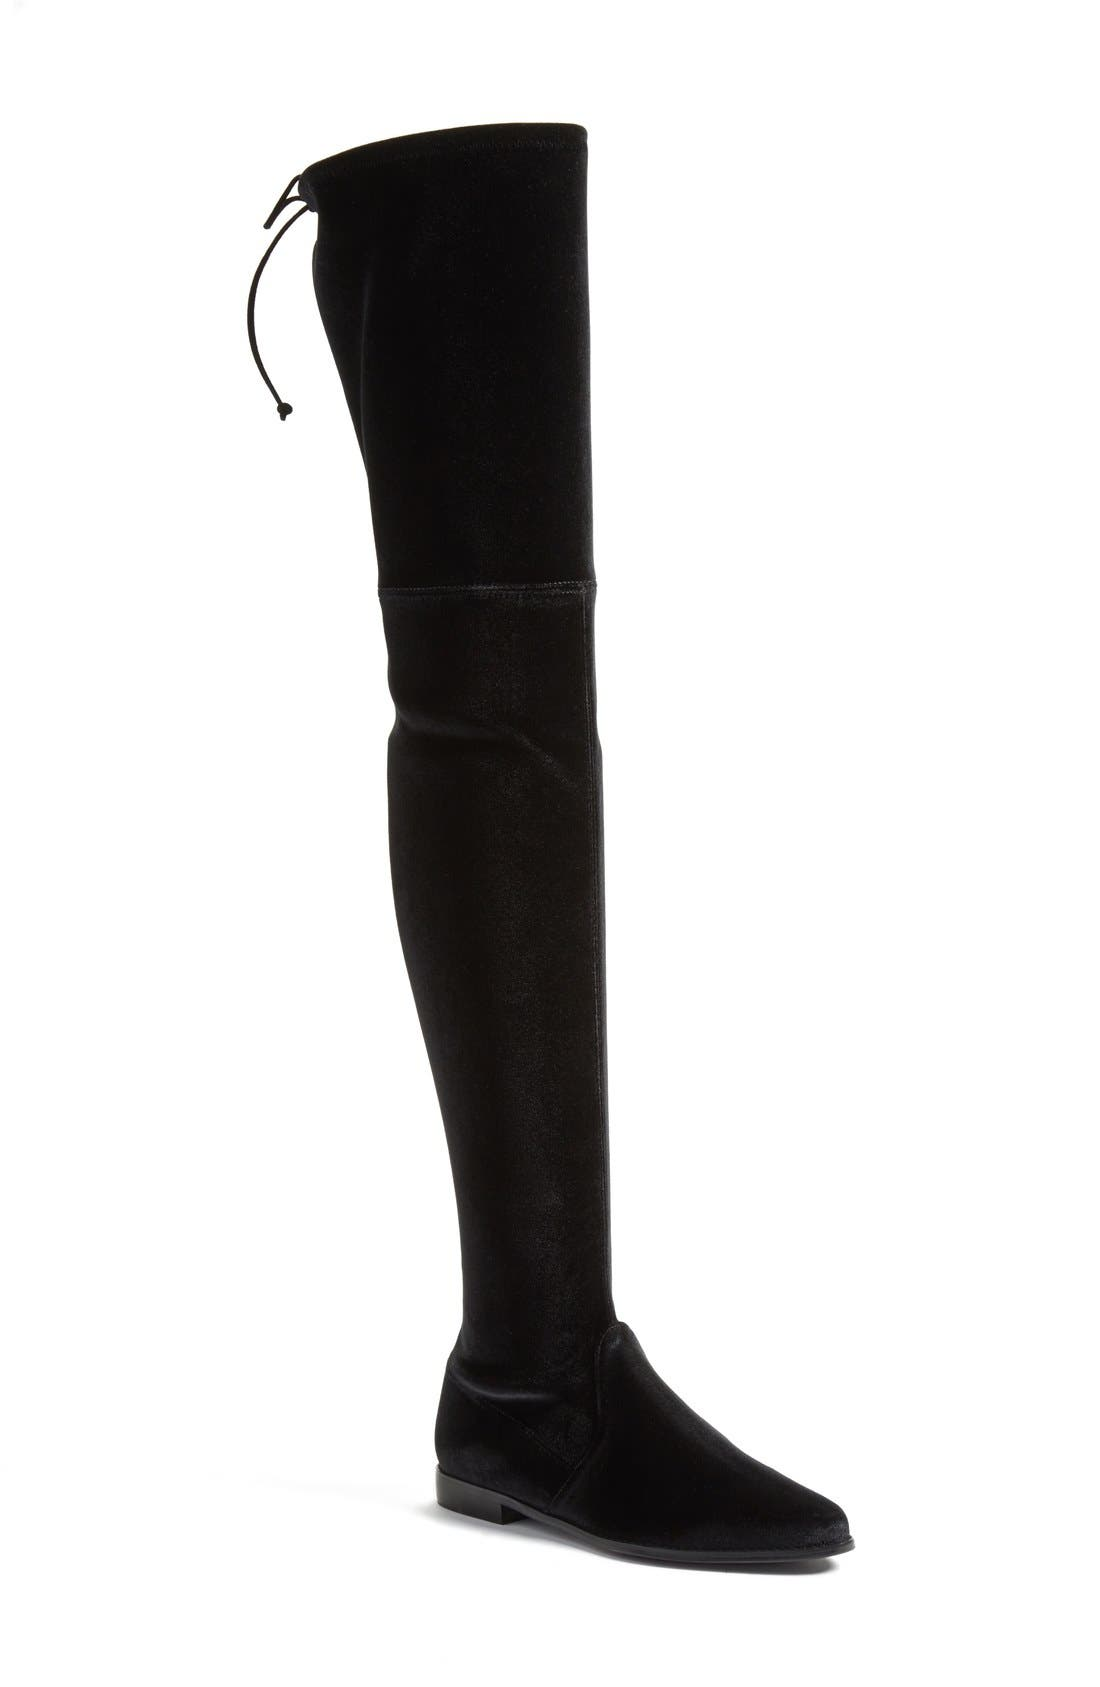 Alternate Image 1 Selected - Stuart Weitzman 'Leggylady' Over the Knee Boot (Women)